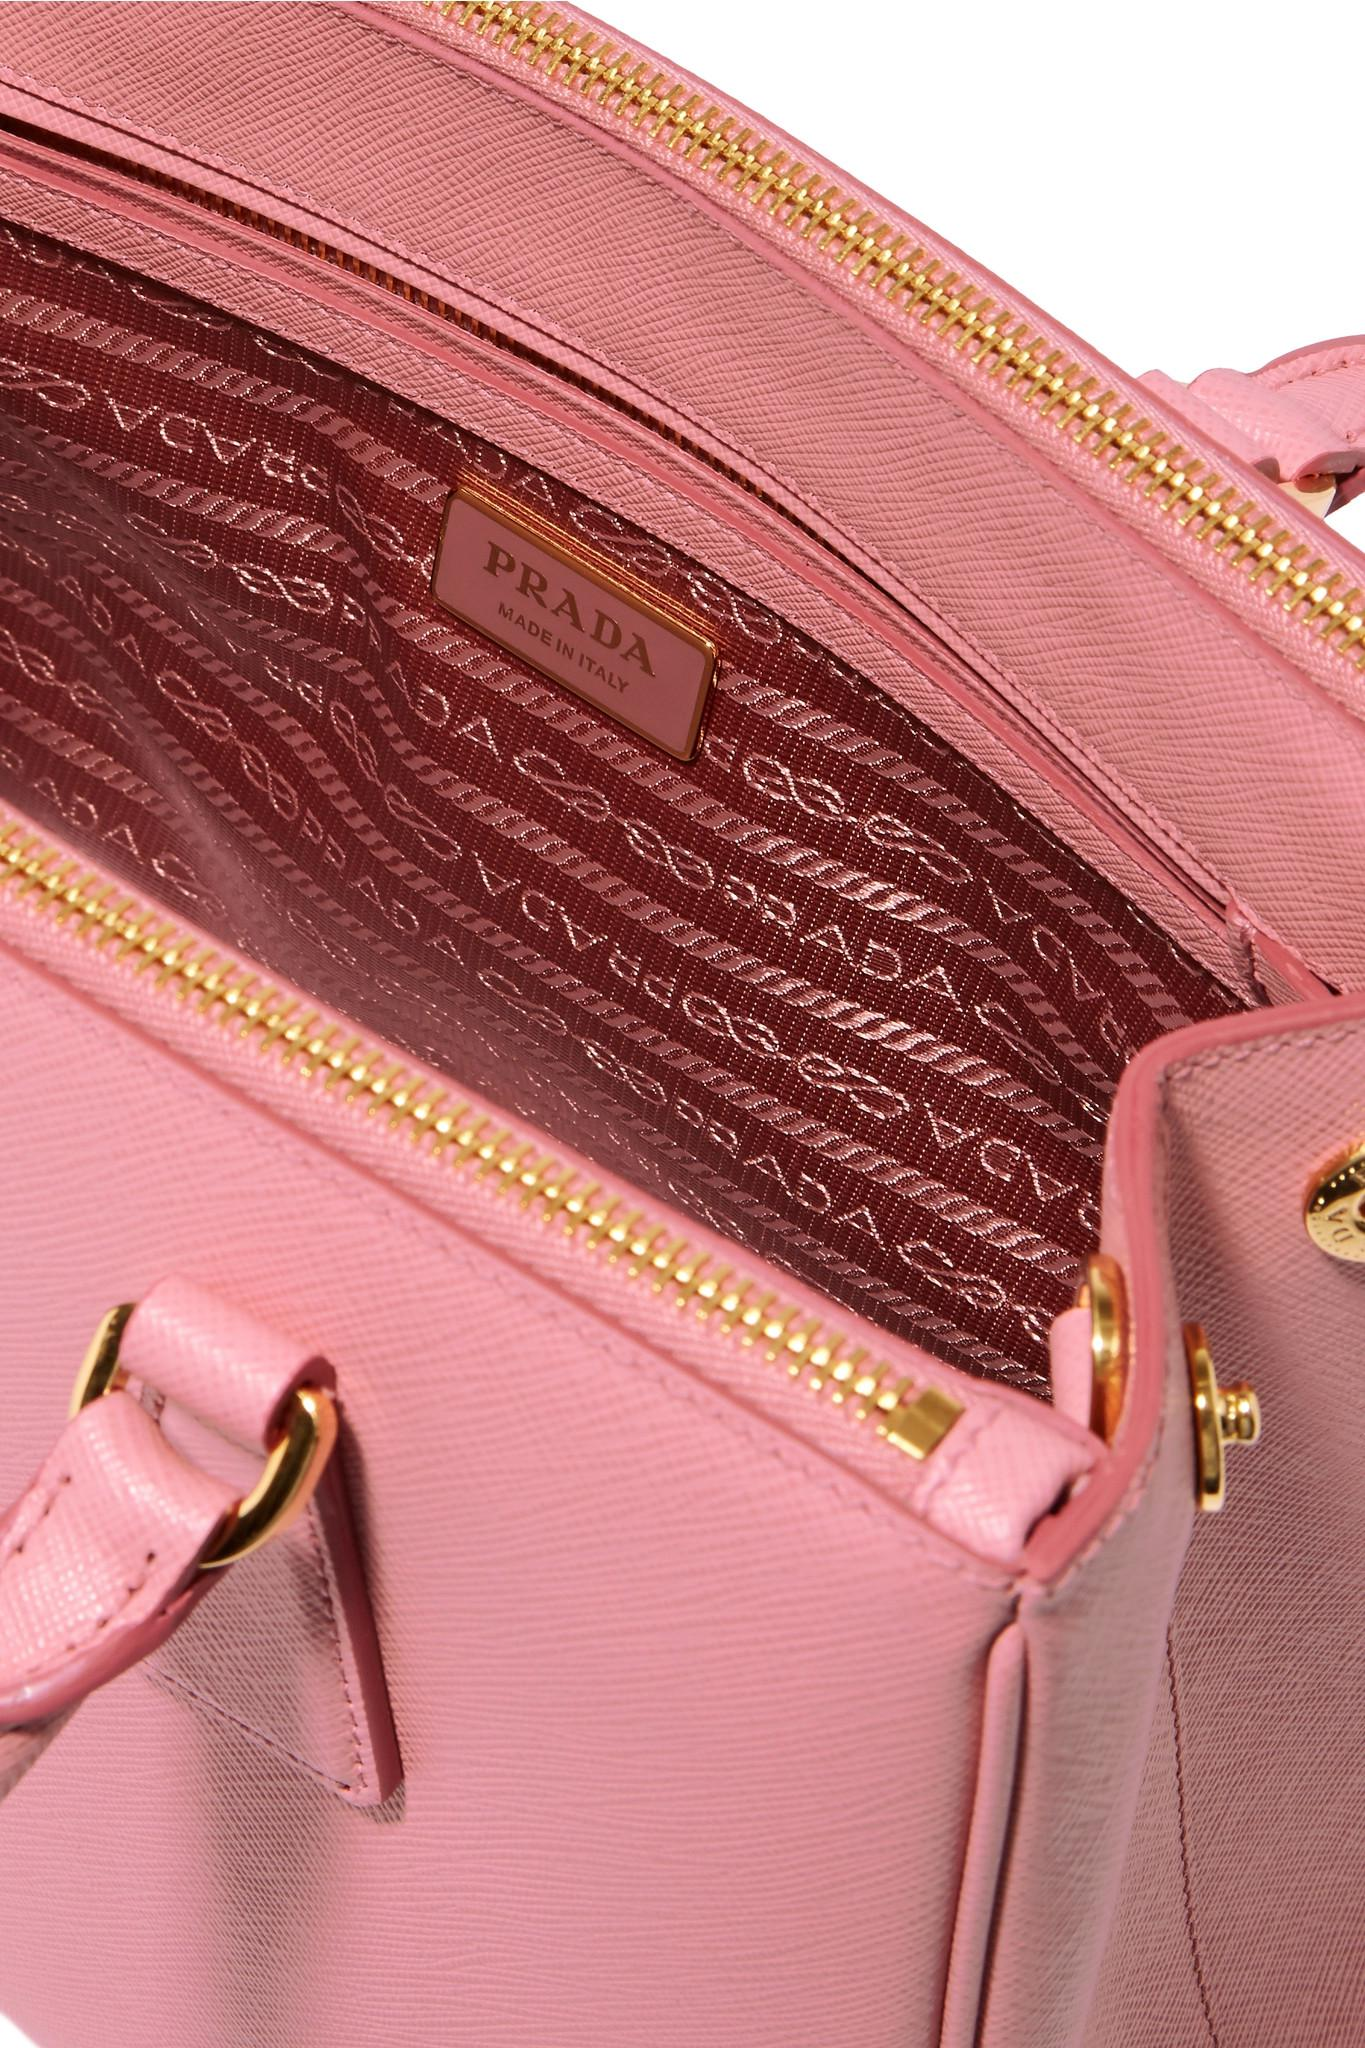 454425b0998 Prada Galleria Medium Textured-Leather Tote in Pink - Lyst